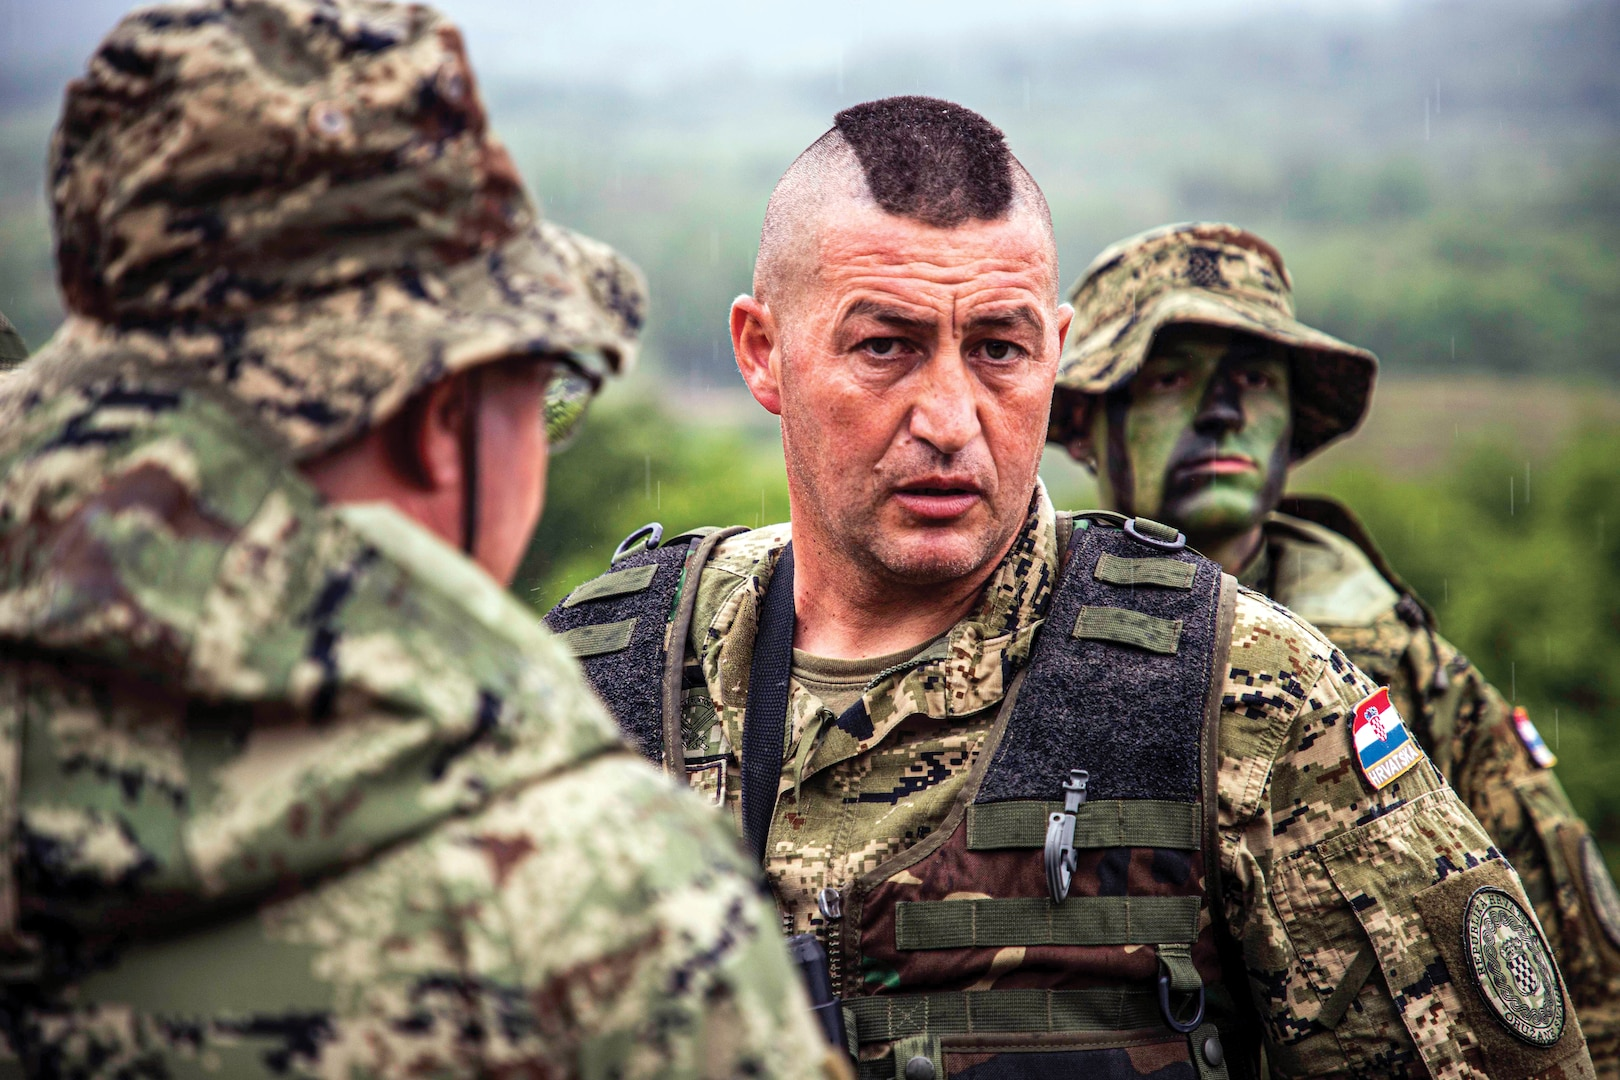 Croatian soldiers discuss logistics during Immediate Response 19, co-led by Croatian armed forces, Slovenian armed forces, and U.S. Army Europe, in Croatia, May 27, 2019 (Courtesy NATO)